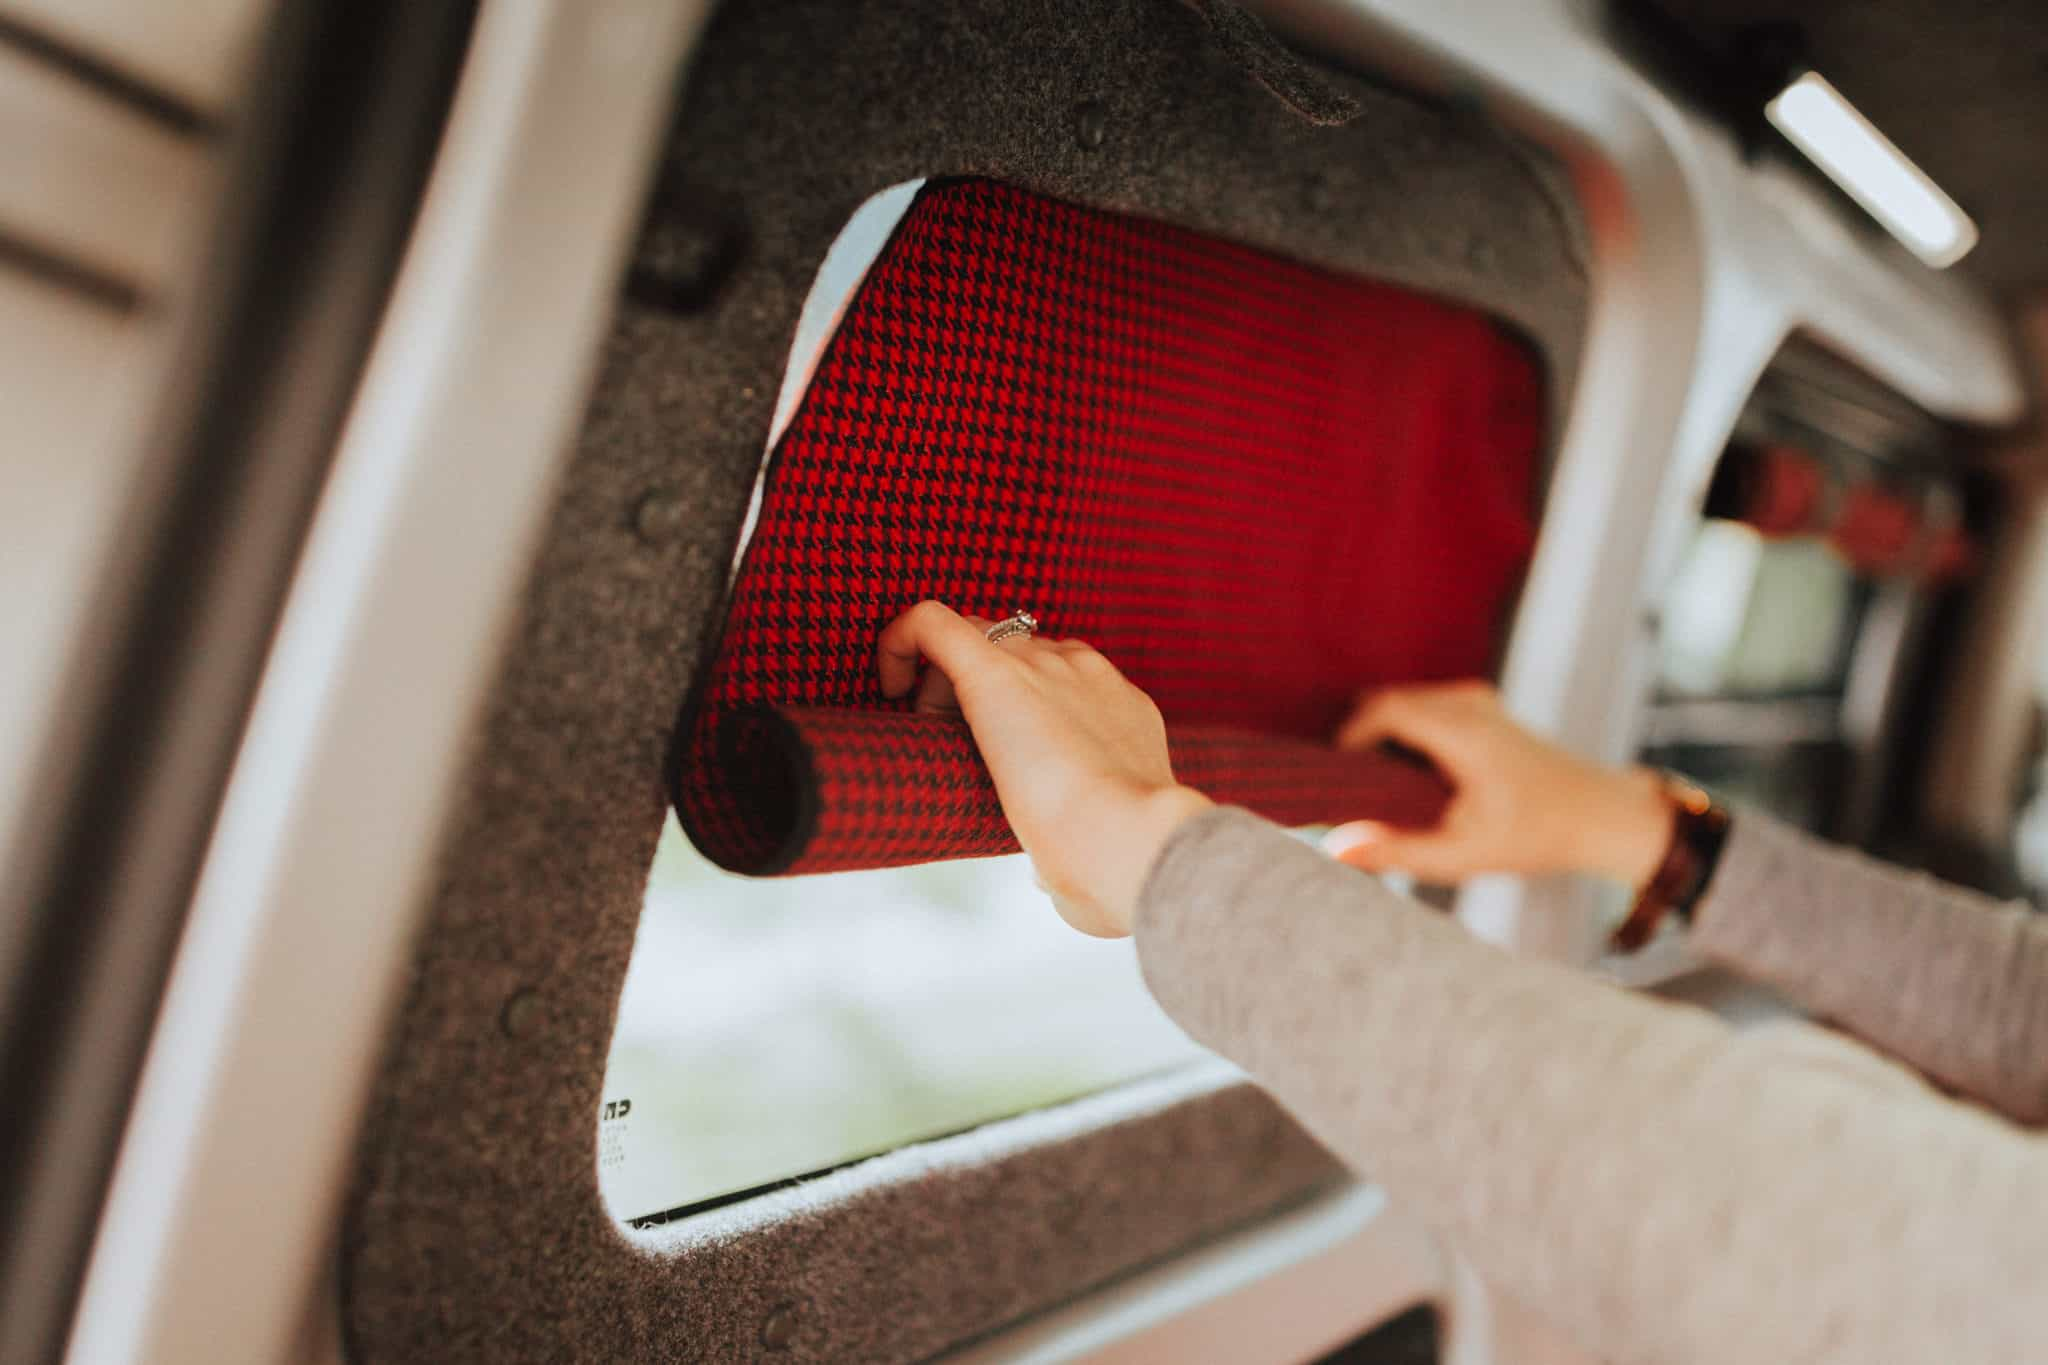 Car Camping Hacks - Window Covers